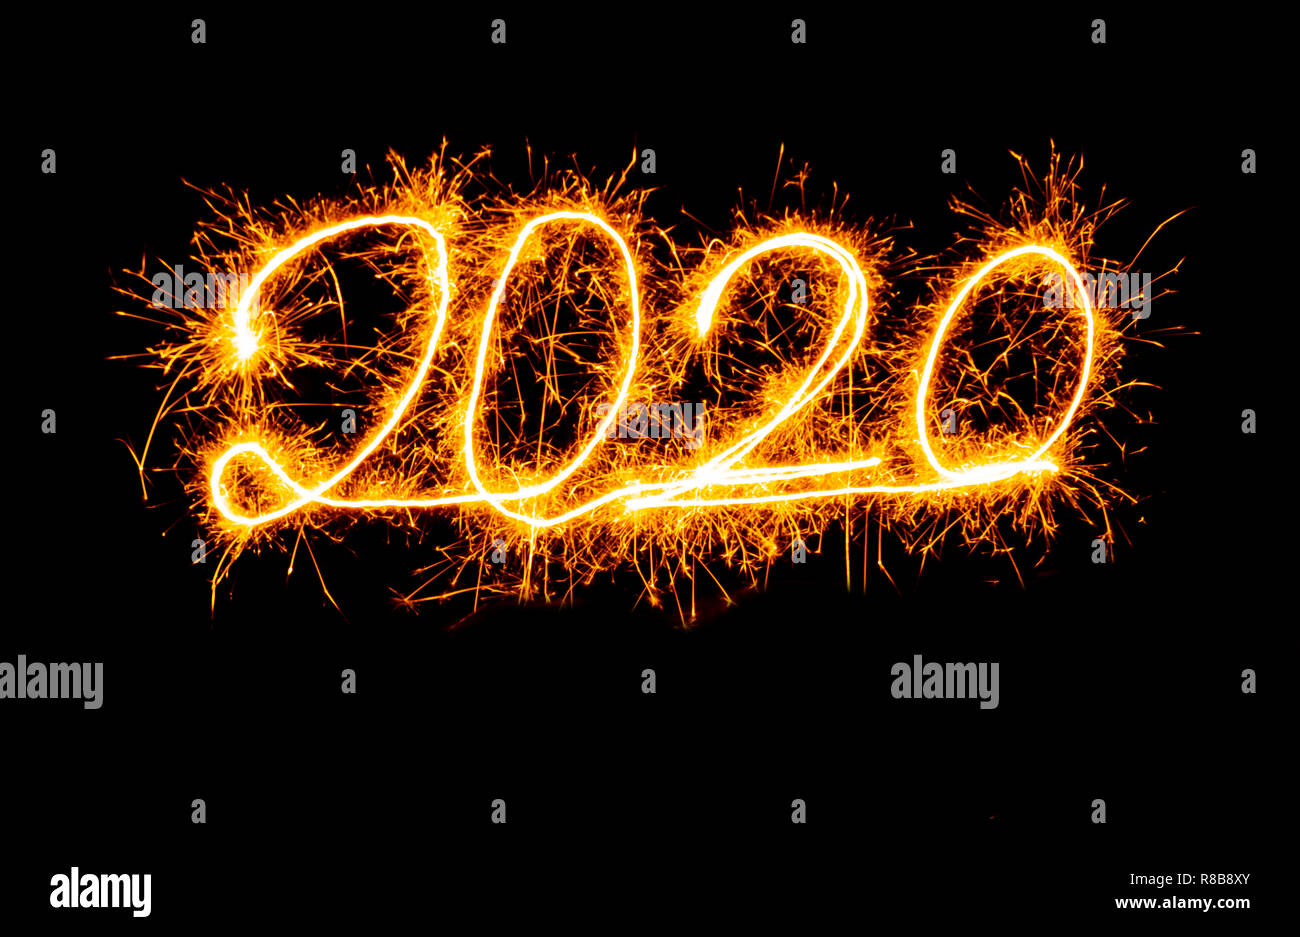 Pic of new years 2020 live